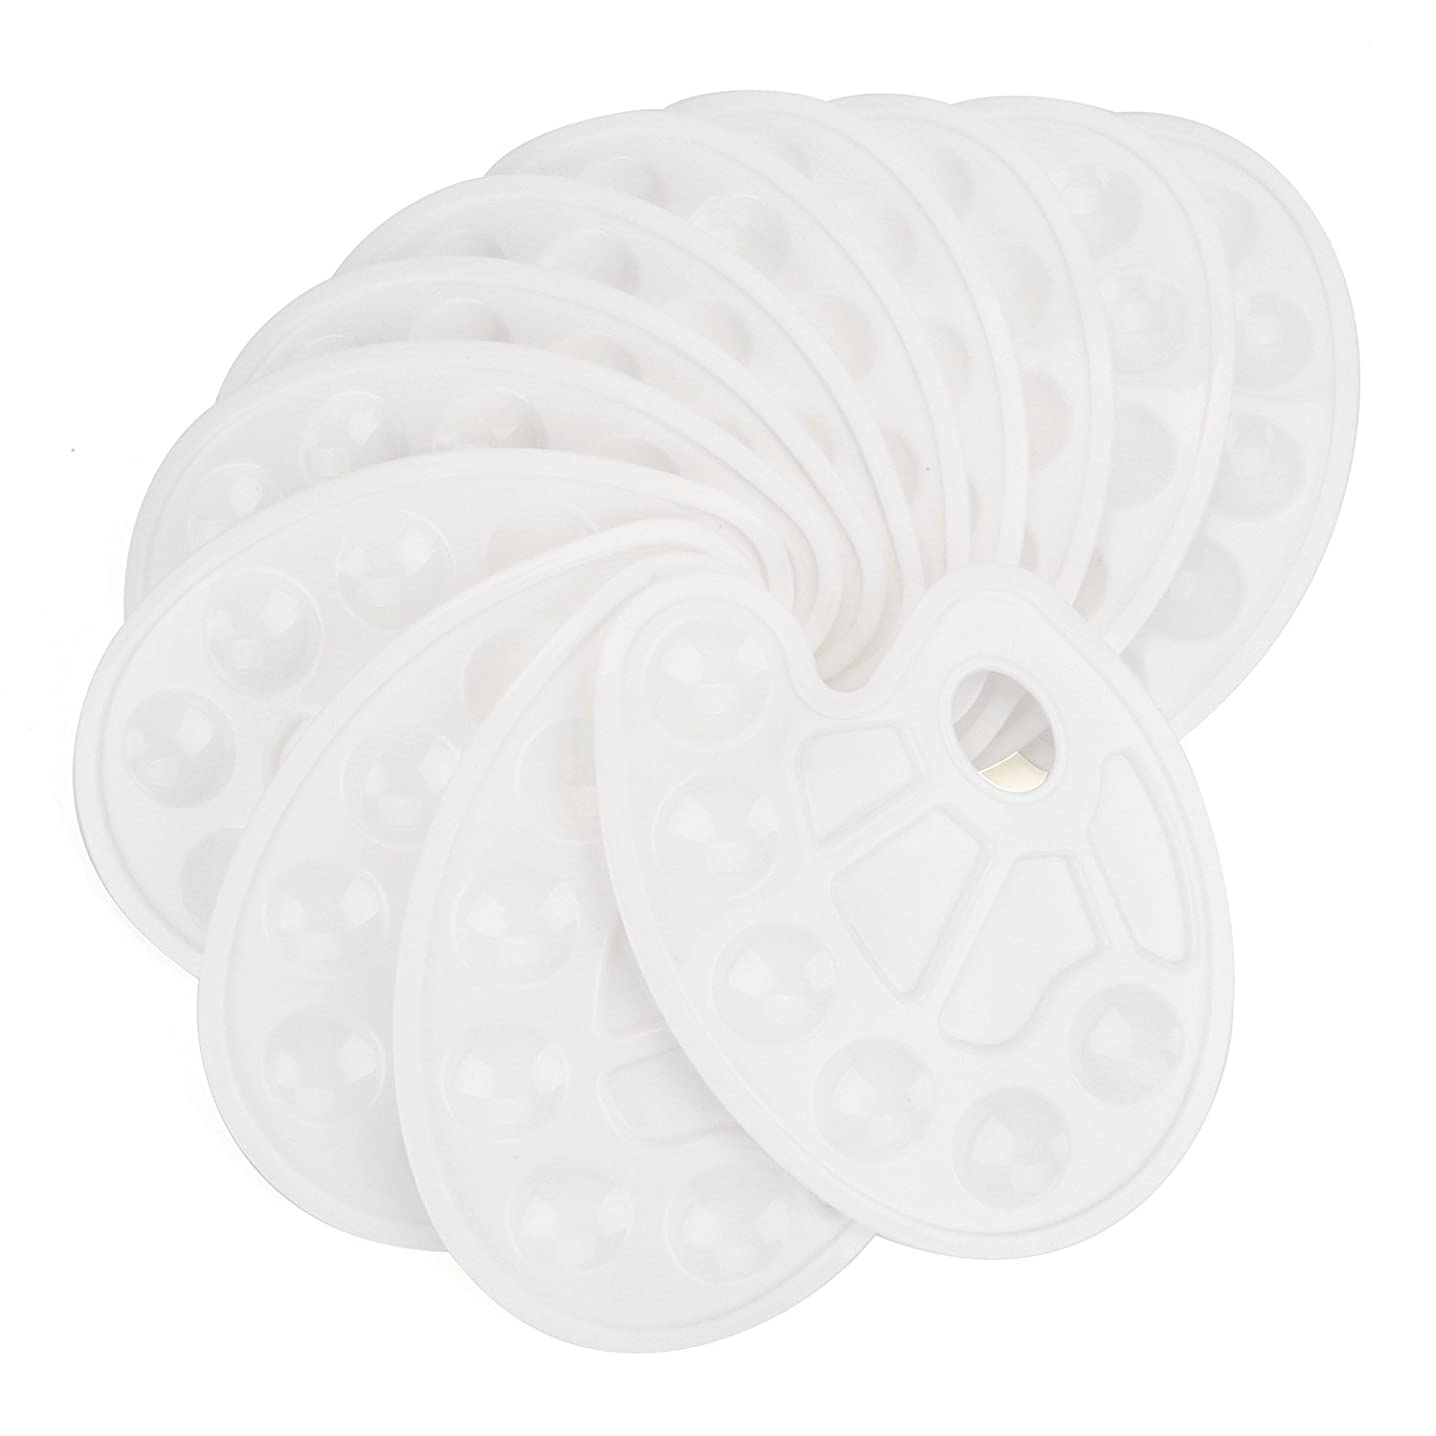 Tosnail White Paint Tray Palettes with Ten-well Thumb Hole - 12 Pack